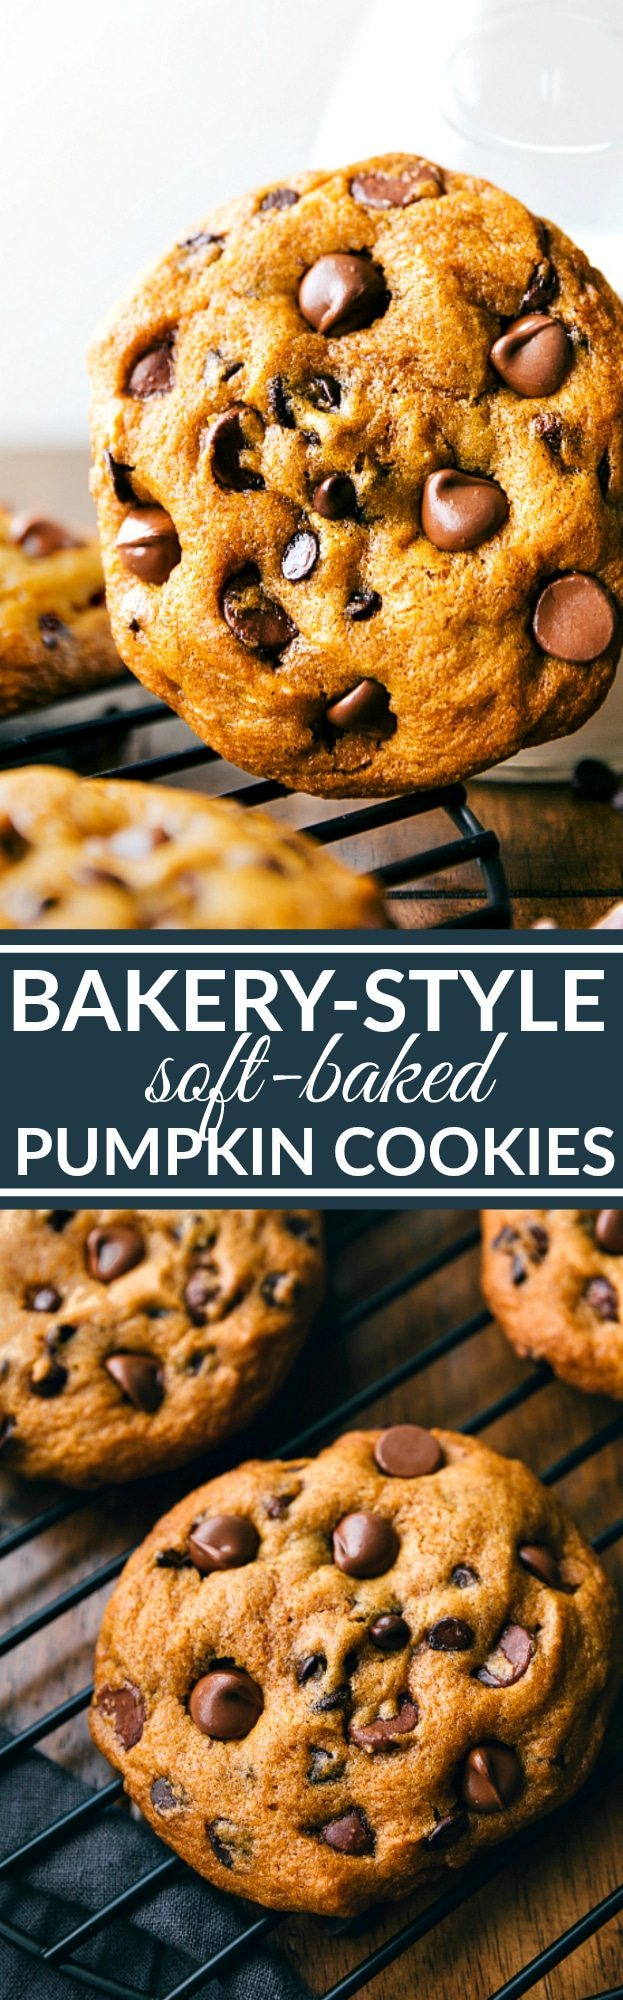 Super big, chewy and soft, muffin-top like pumpkin chocolate-chip cookies that taste like they are straight from a bakery! These bakery-style pumpkin cookies are made in ONE bowl! Recipe via chelseasmessyapron.com